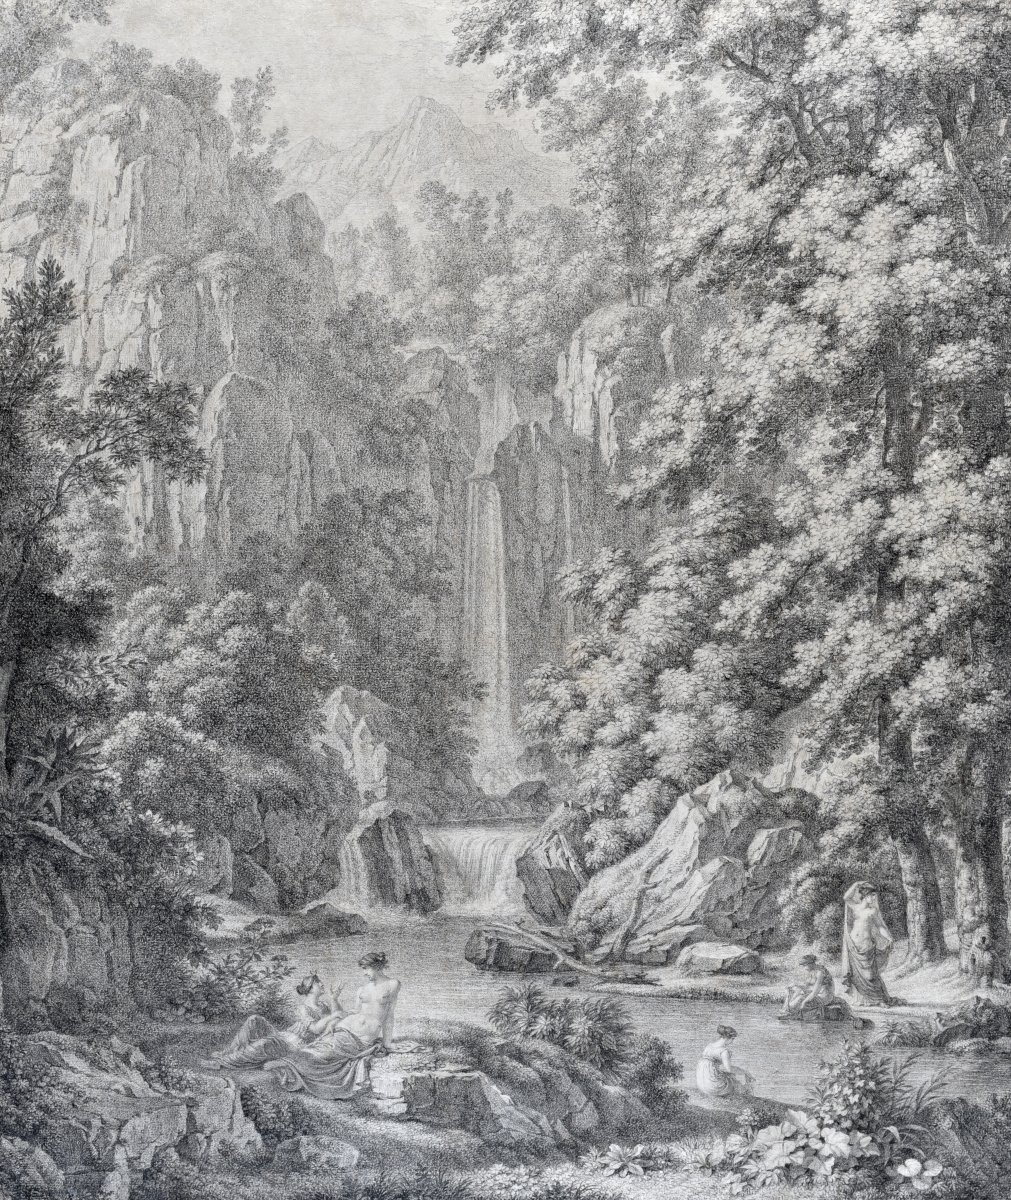 Attributed To Jean-françois HÜe (1751-1823), The Bath Of Diane Near A Waterfall, Lead Pencil